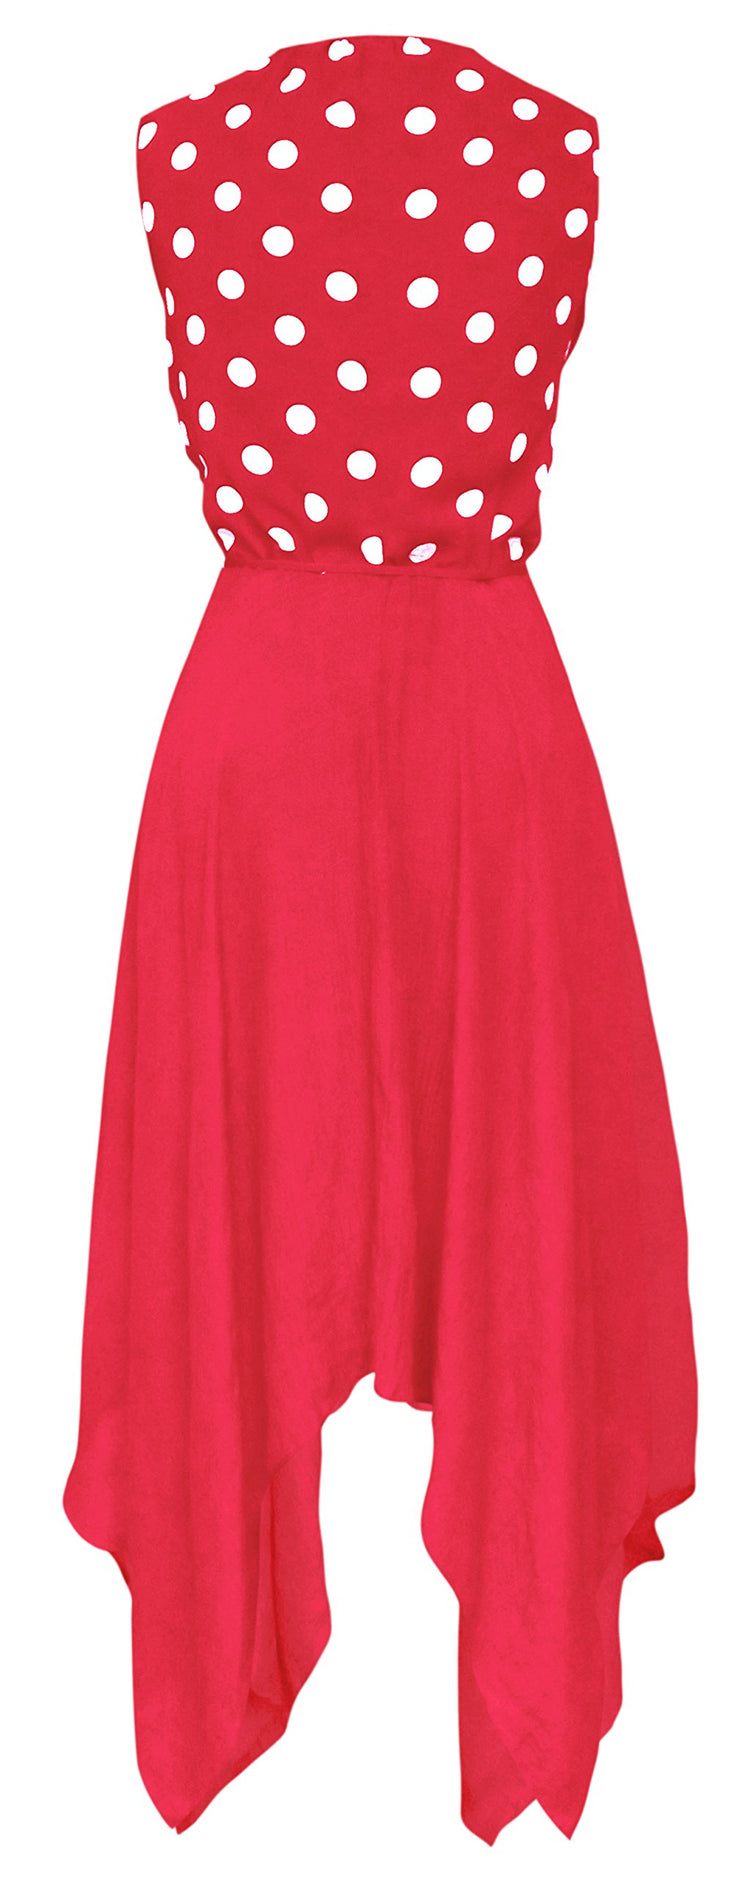 Women's Casual 2 in 1 Polka Dot Flowing Handkerchief Dress (Coral, Medium)